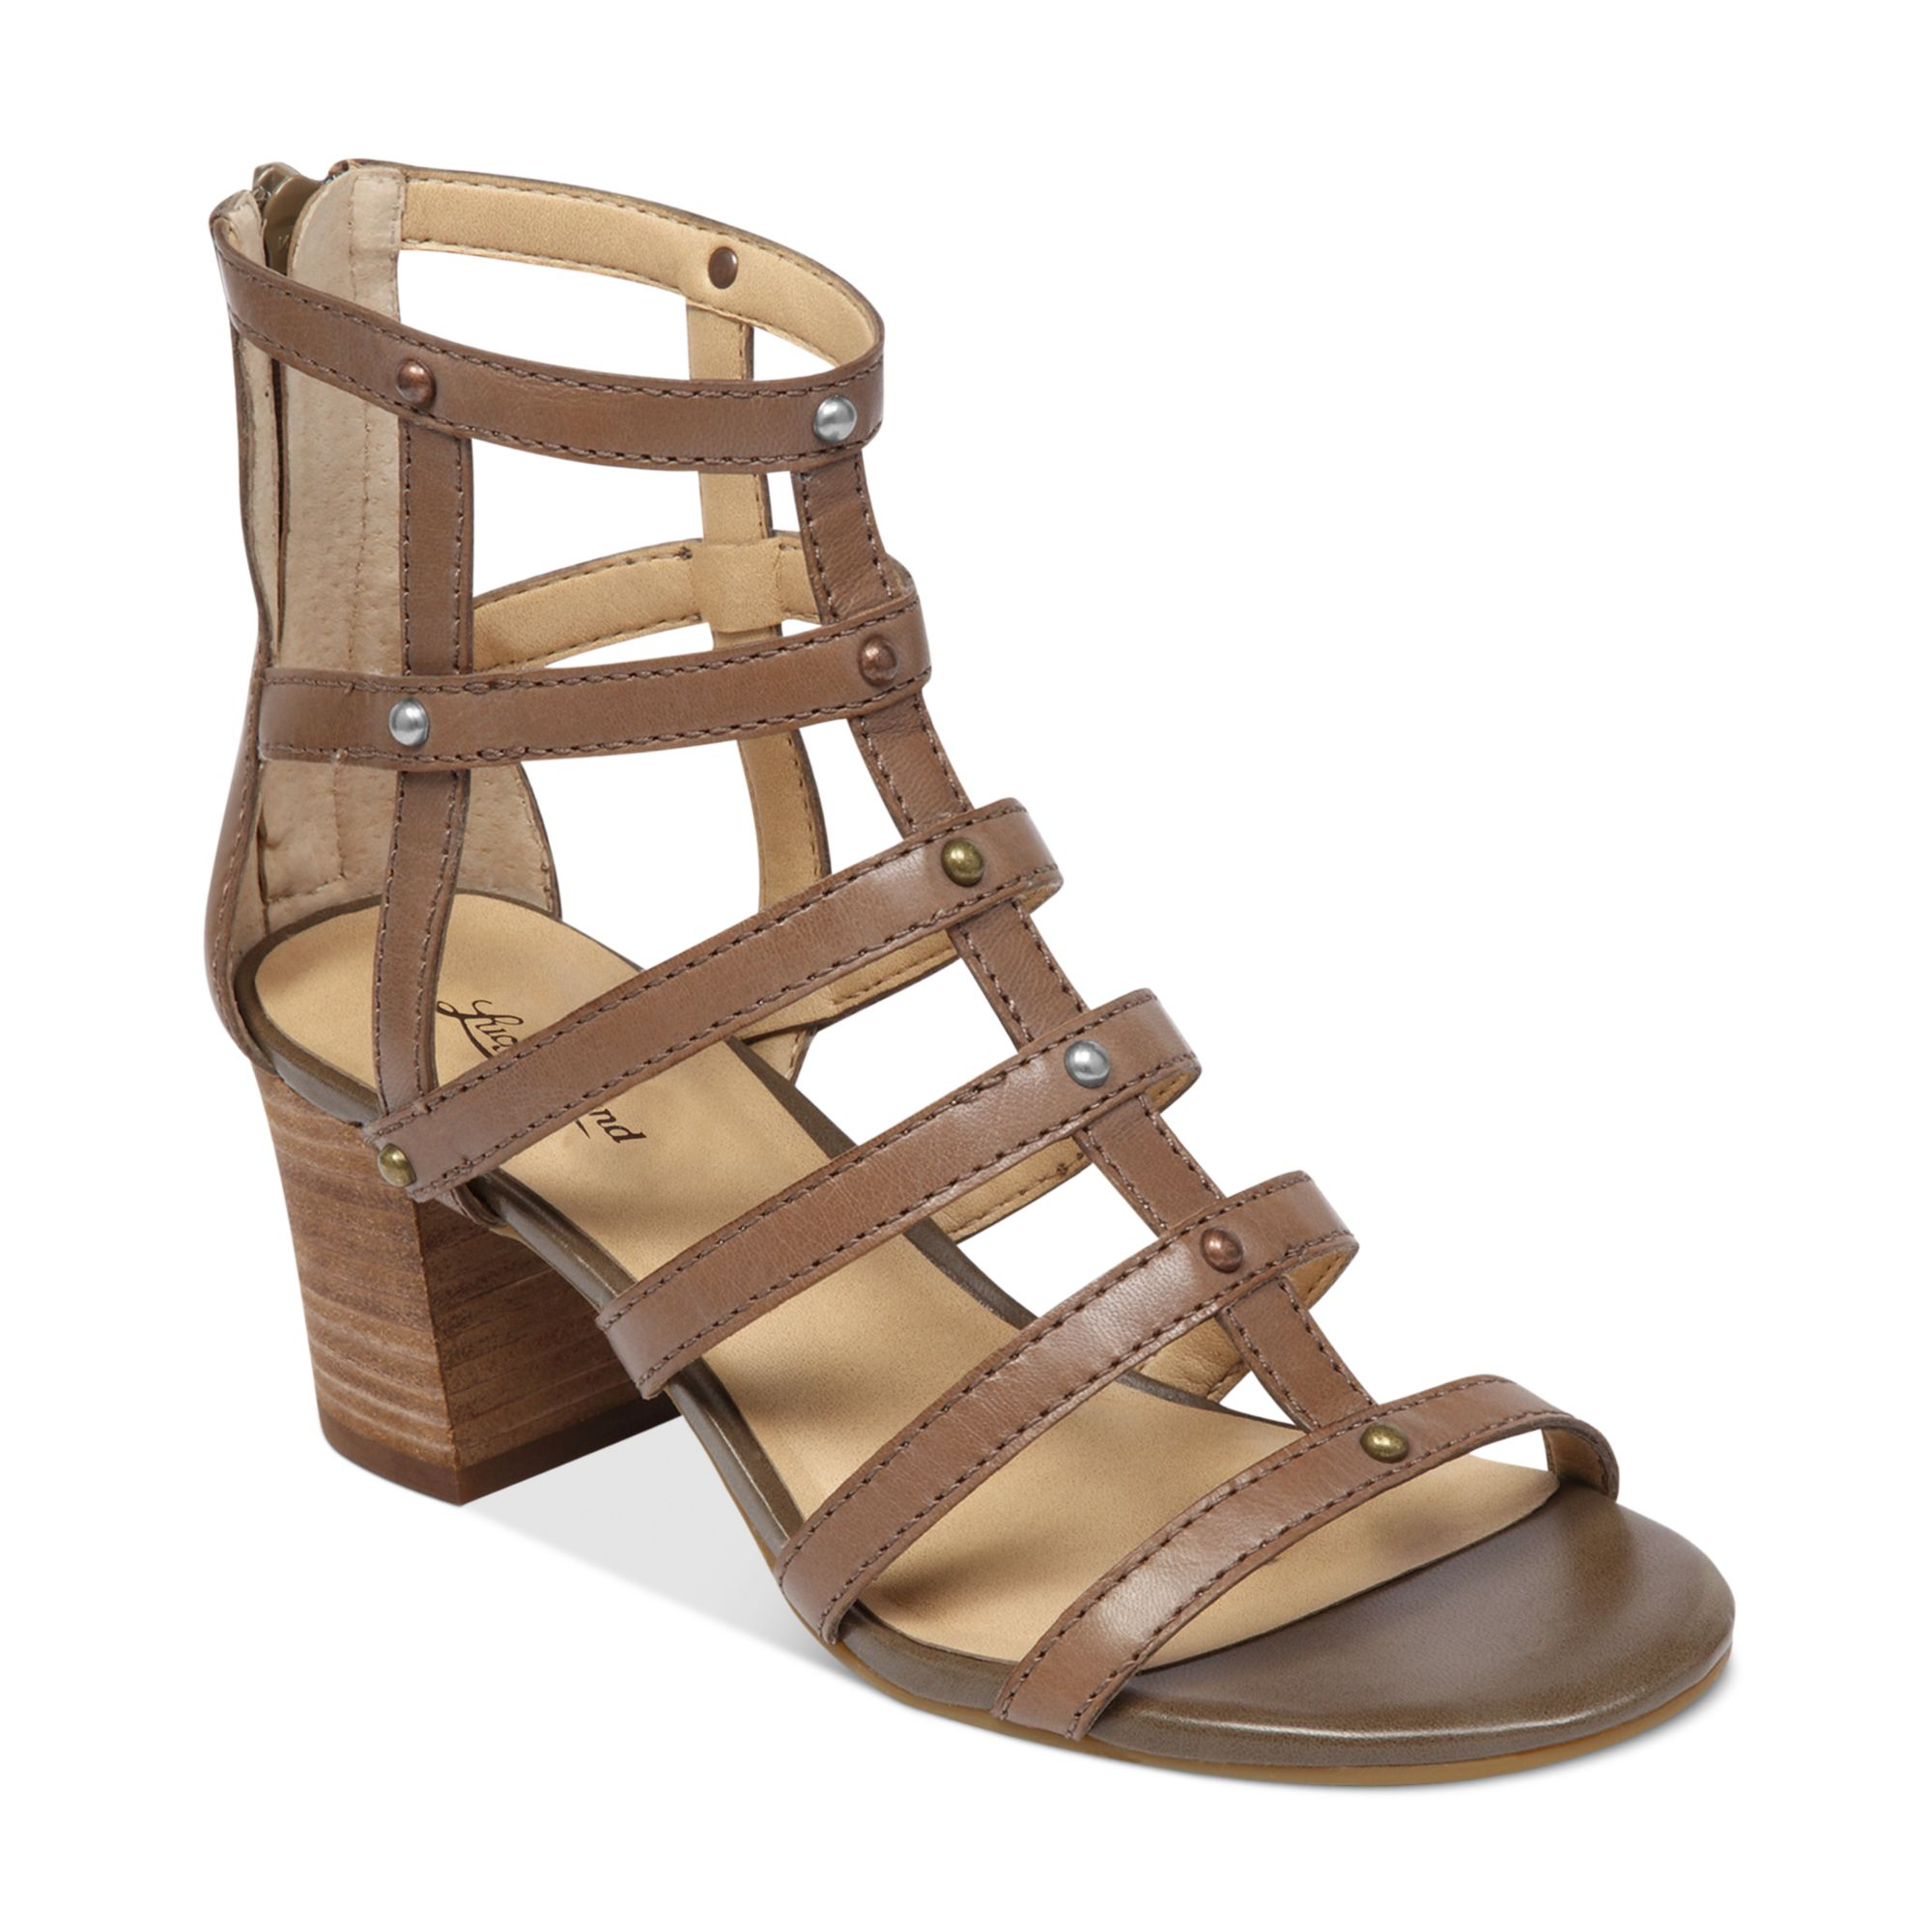 Lucky Brand Lisbethe Gladiator Sandals In Brown (Brindle) | Lyst